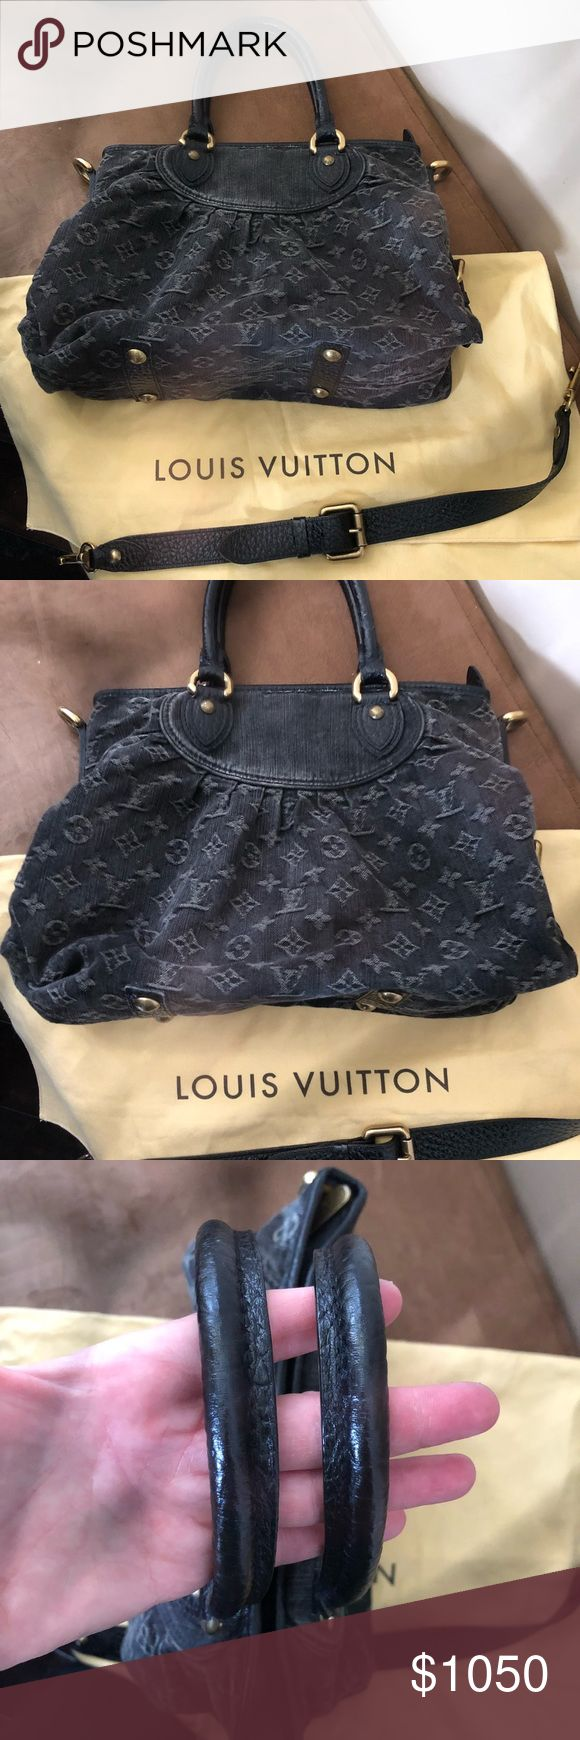 💯% AUTHENTIC LOUIS VUITTON BAG Authentic Louis Vuitton Black Denim Monogram Neo Cabby shoulder bag. Bag is in great condition!  Comes with removable/adjustable strap and dustbag.  Small pen marks inside (shown in photos). Louis Vuitton Bags Shoulder Bags